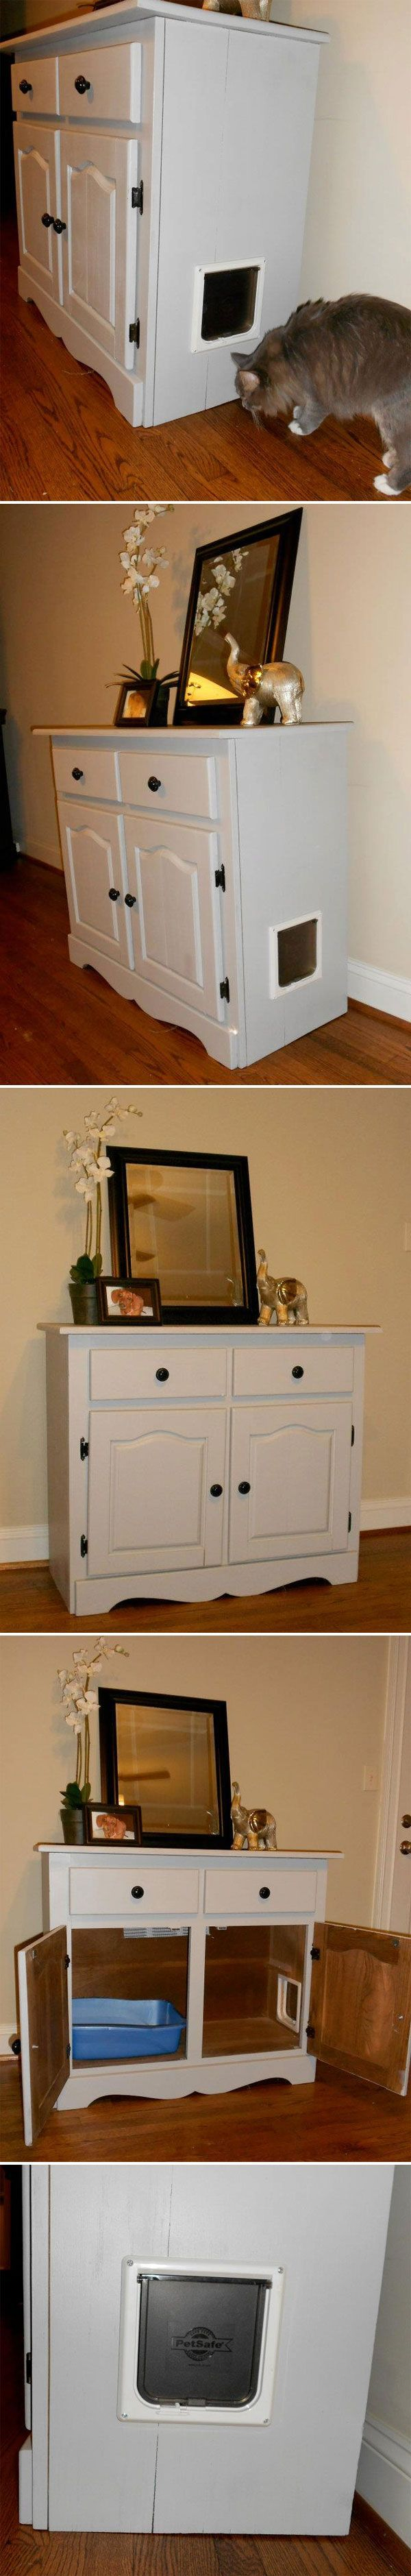 Inspiration Cat Litter Cabinet How Cool Is This Custom Built